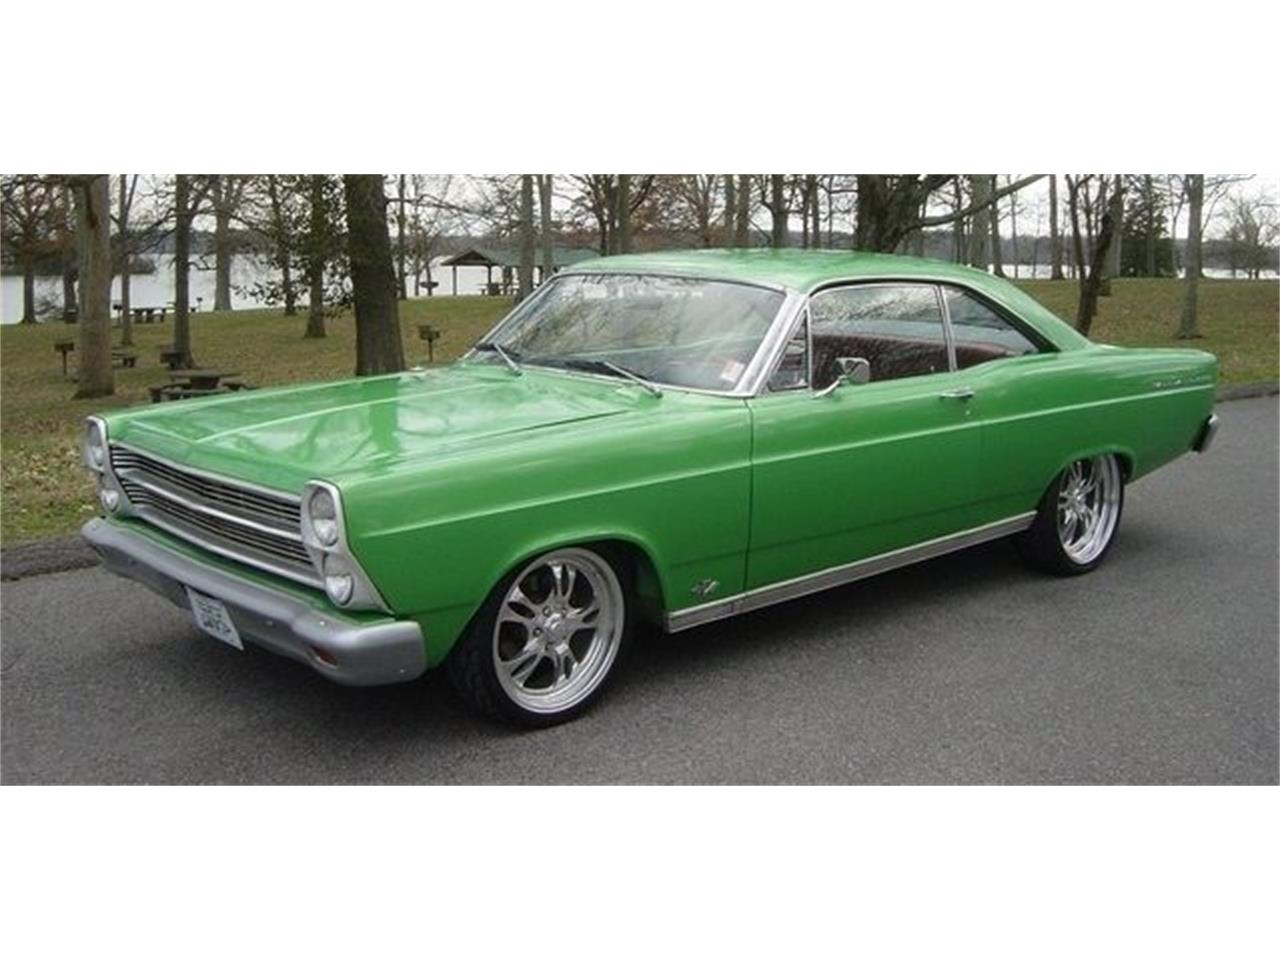 For Sale: 1966 Ford Fairlane in Hendersonville, Tennessee